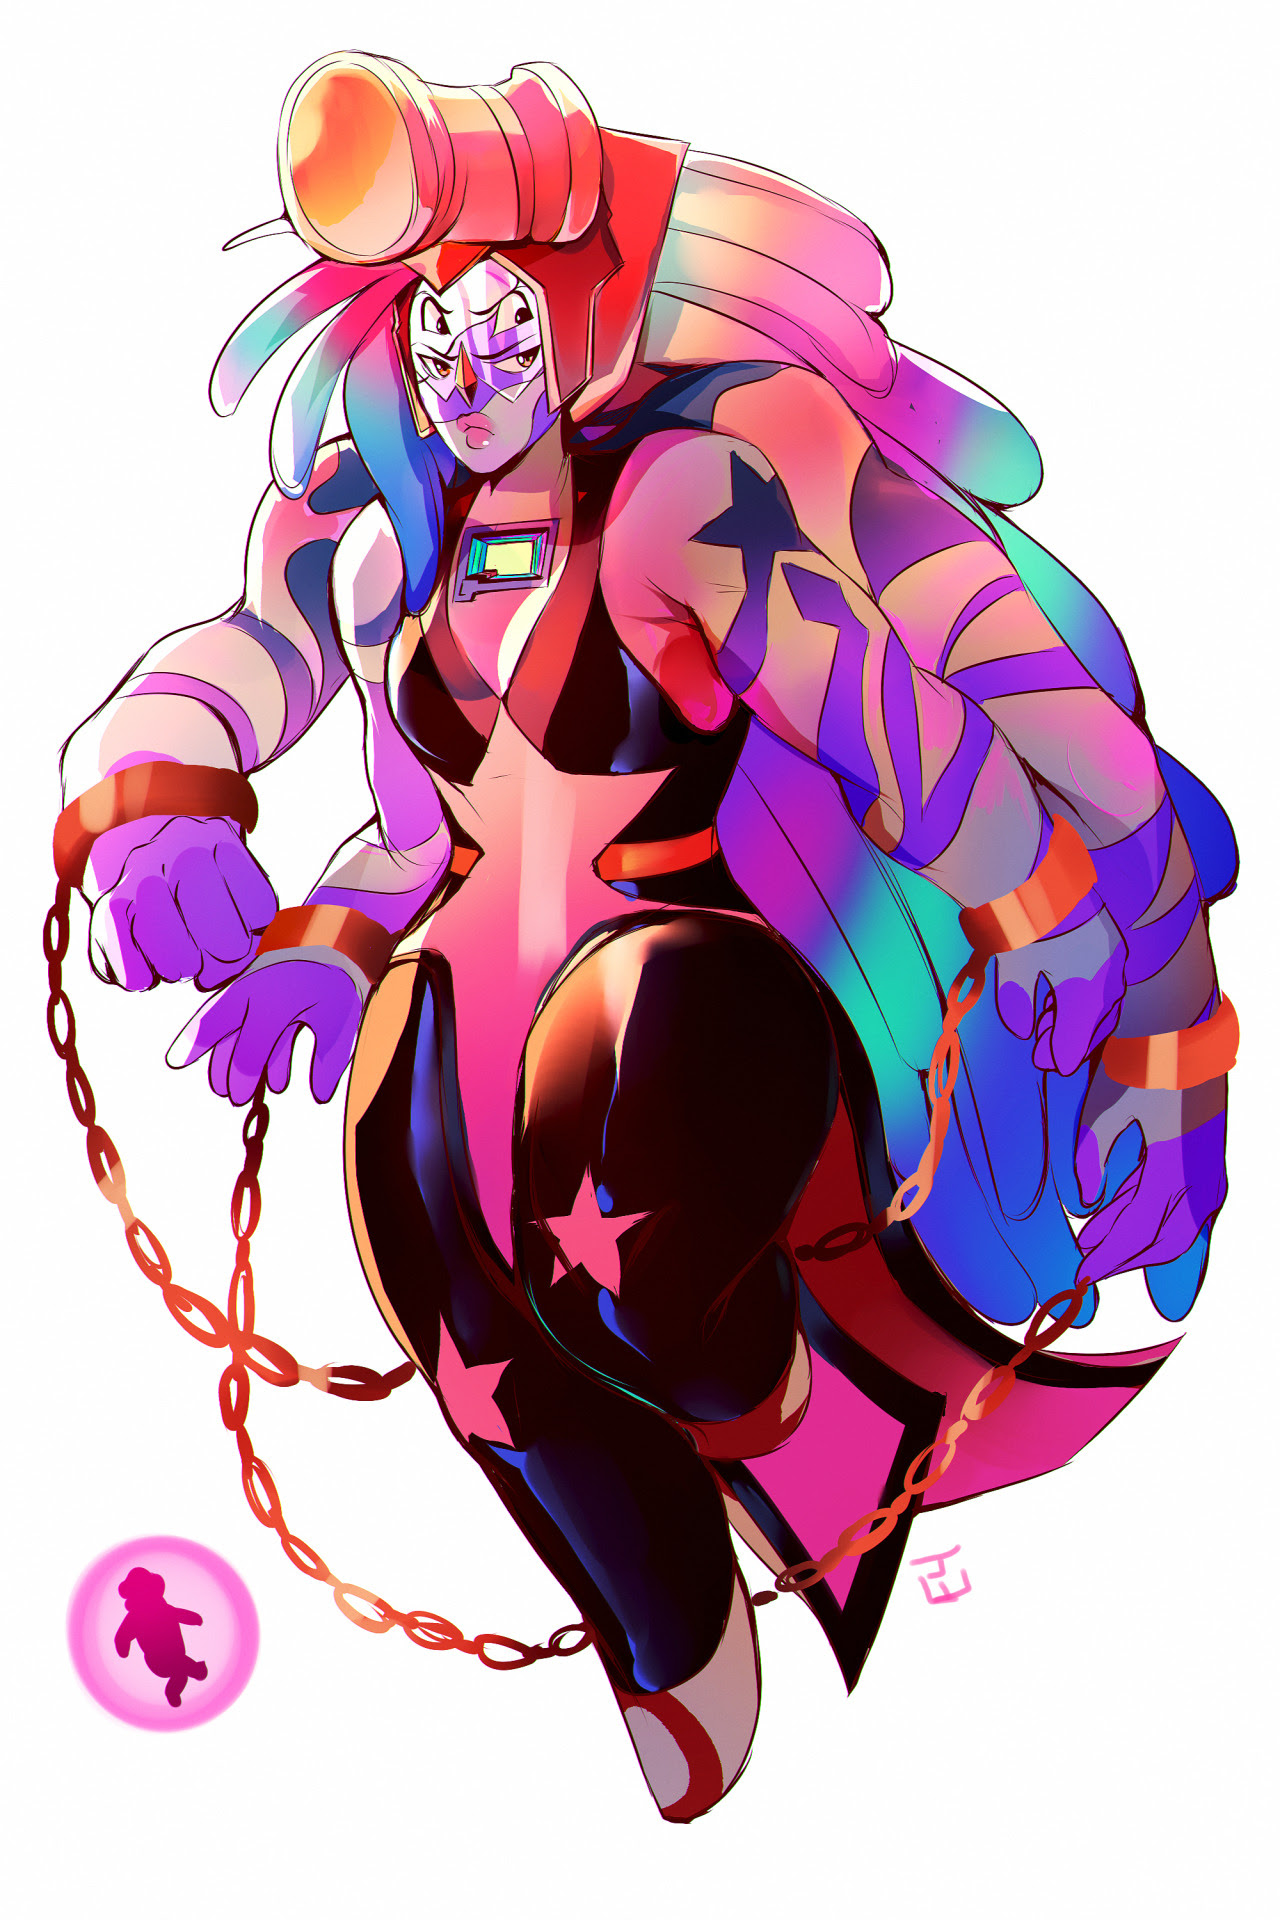 Maybe Bismuth would be the one who wants to stay Bismuth+Jasper fusion with Jasper redeemed because my friend said I should draw one